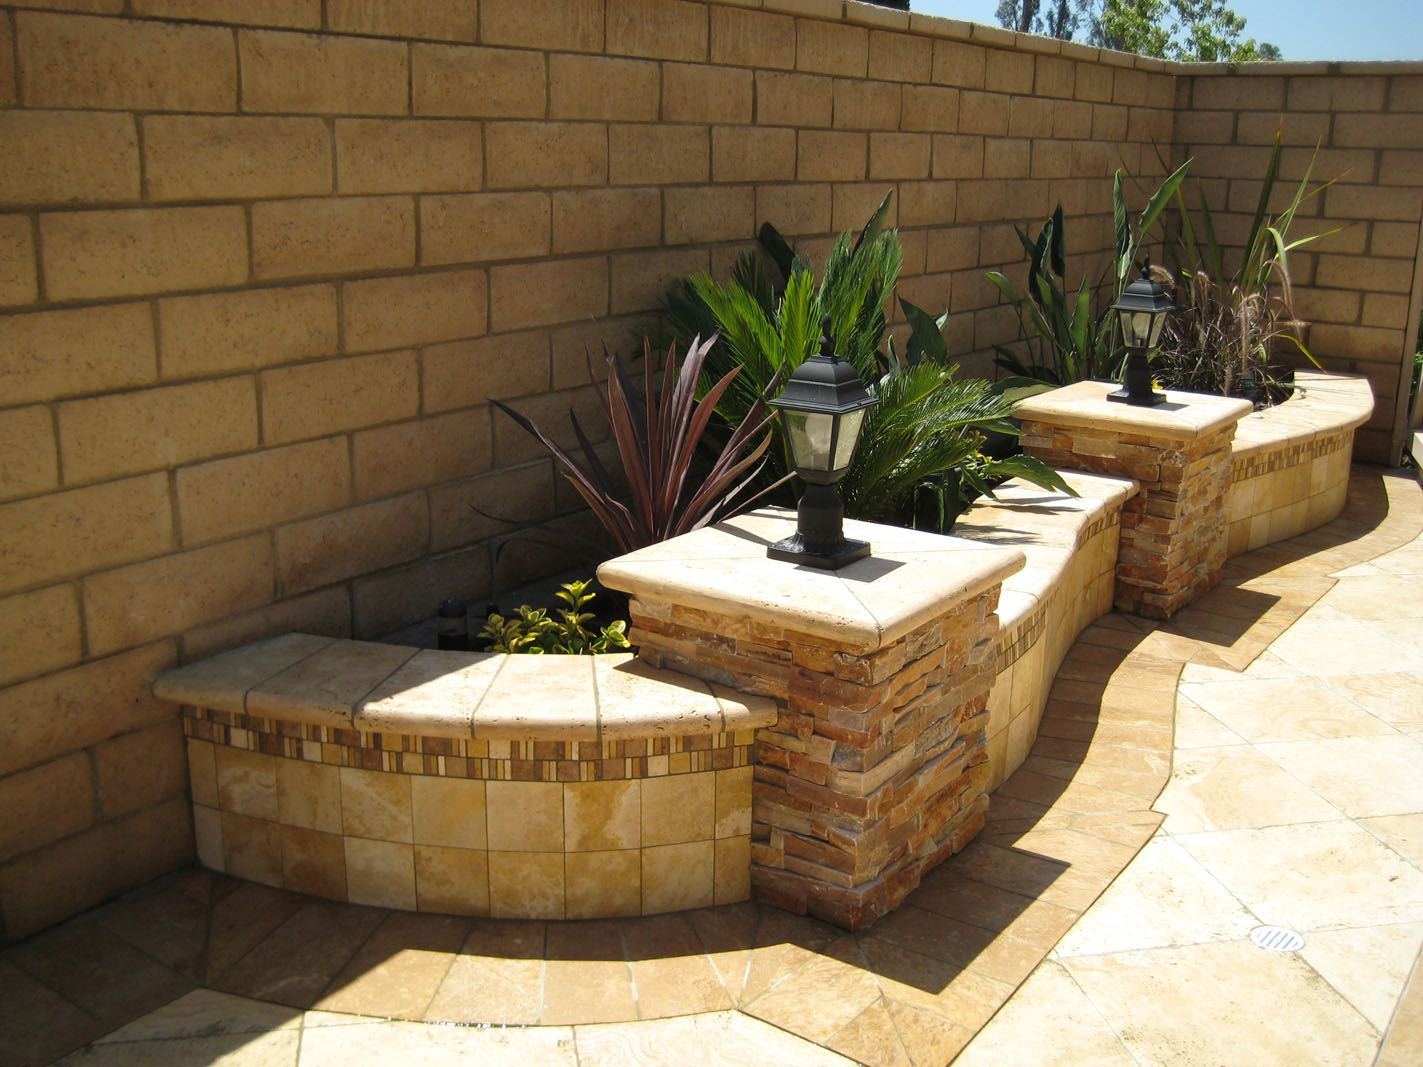 Exceptional Outdoor Living With Natural Stone   Traditional   Landscape   Orange County    M S International, Inc. Amazing Pictures